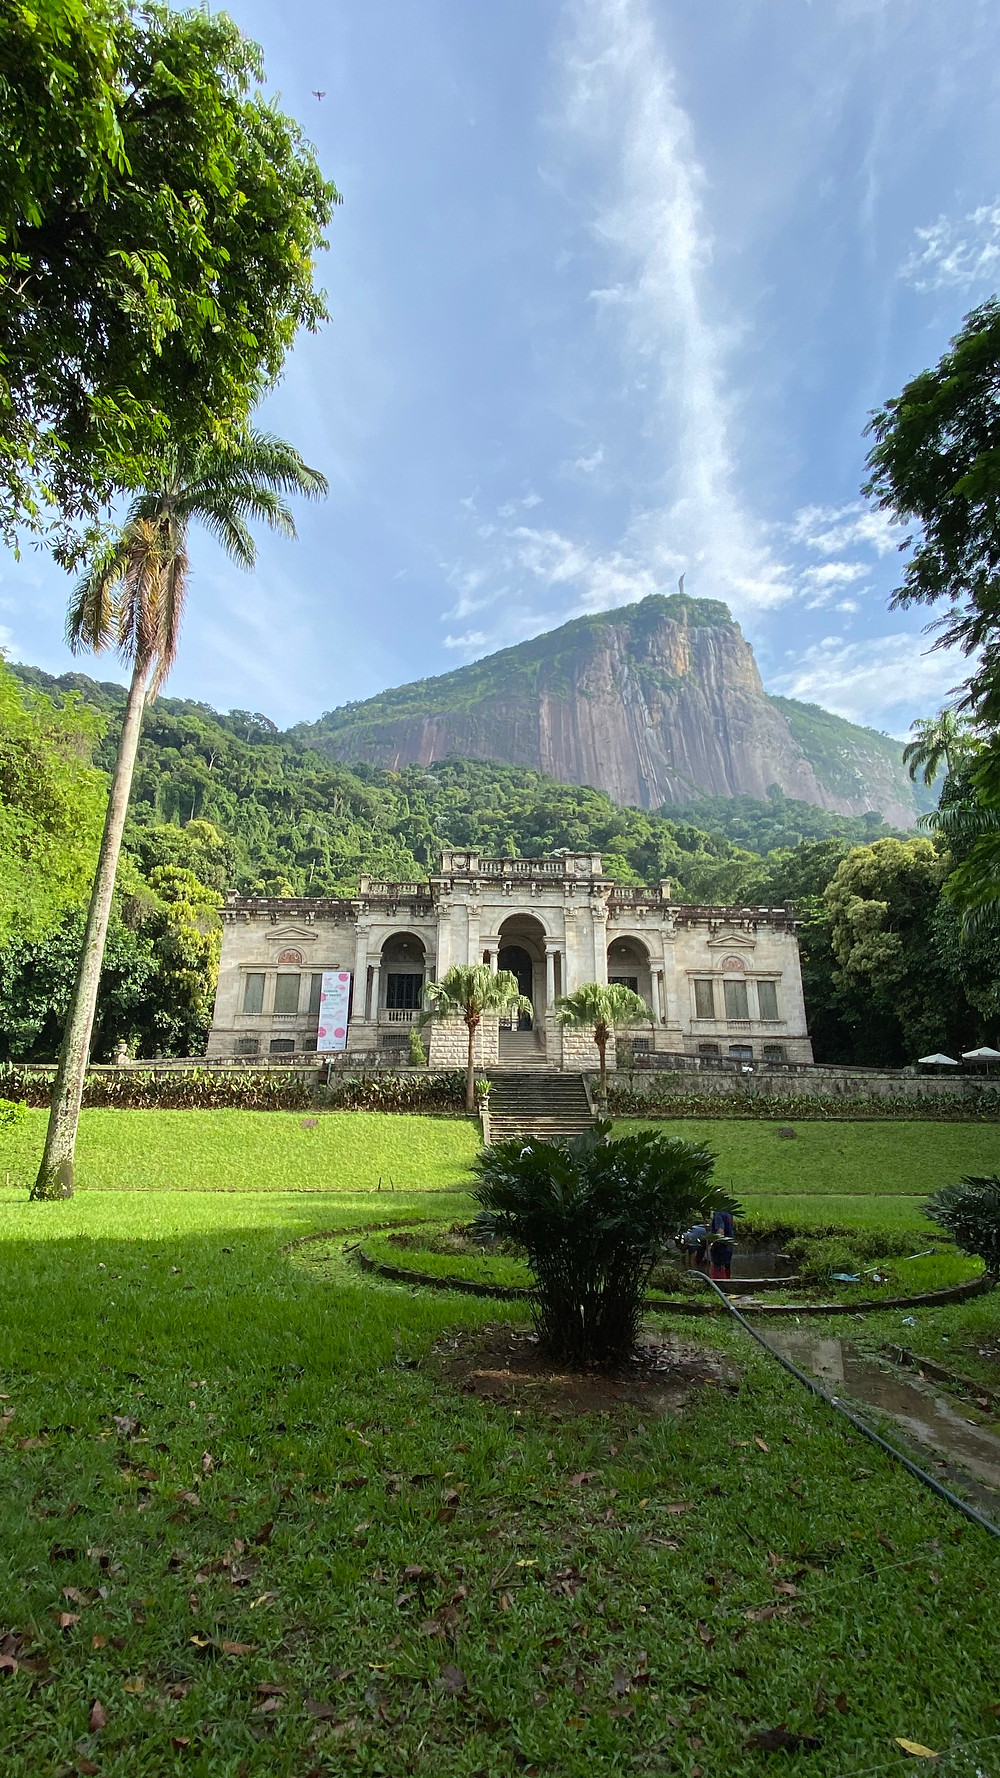 Parque Lage is a large park at the foot of Corcovado